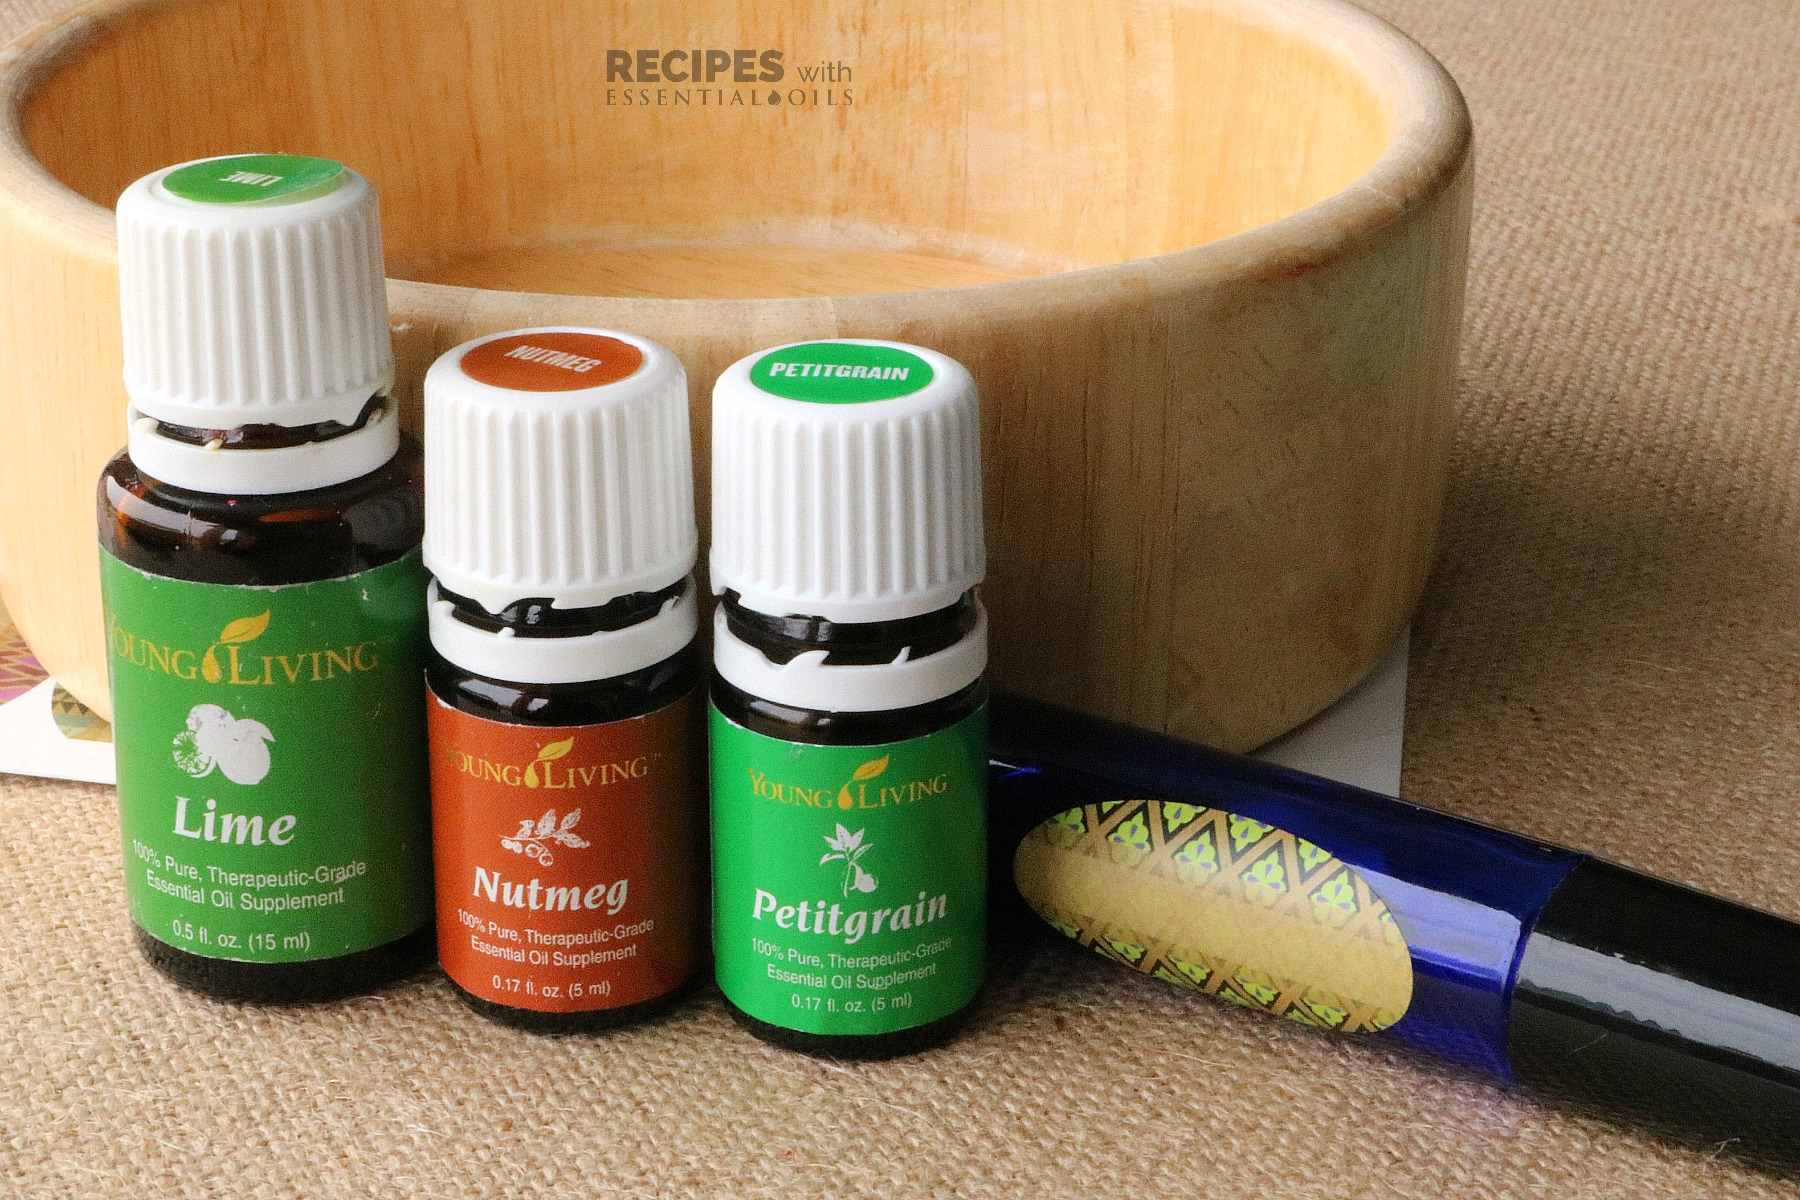 Essential Oil Roller Blends for Confidence from RecipeswithEssentialOils.com